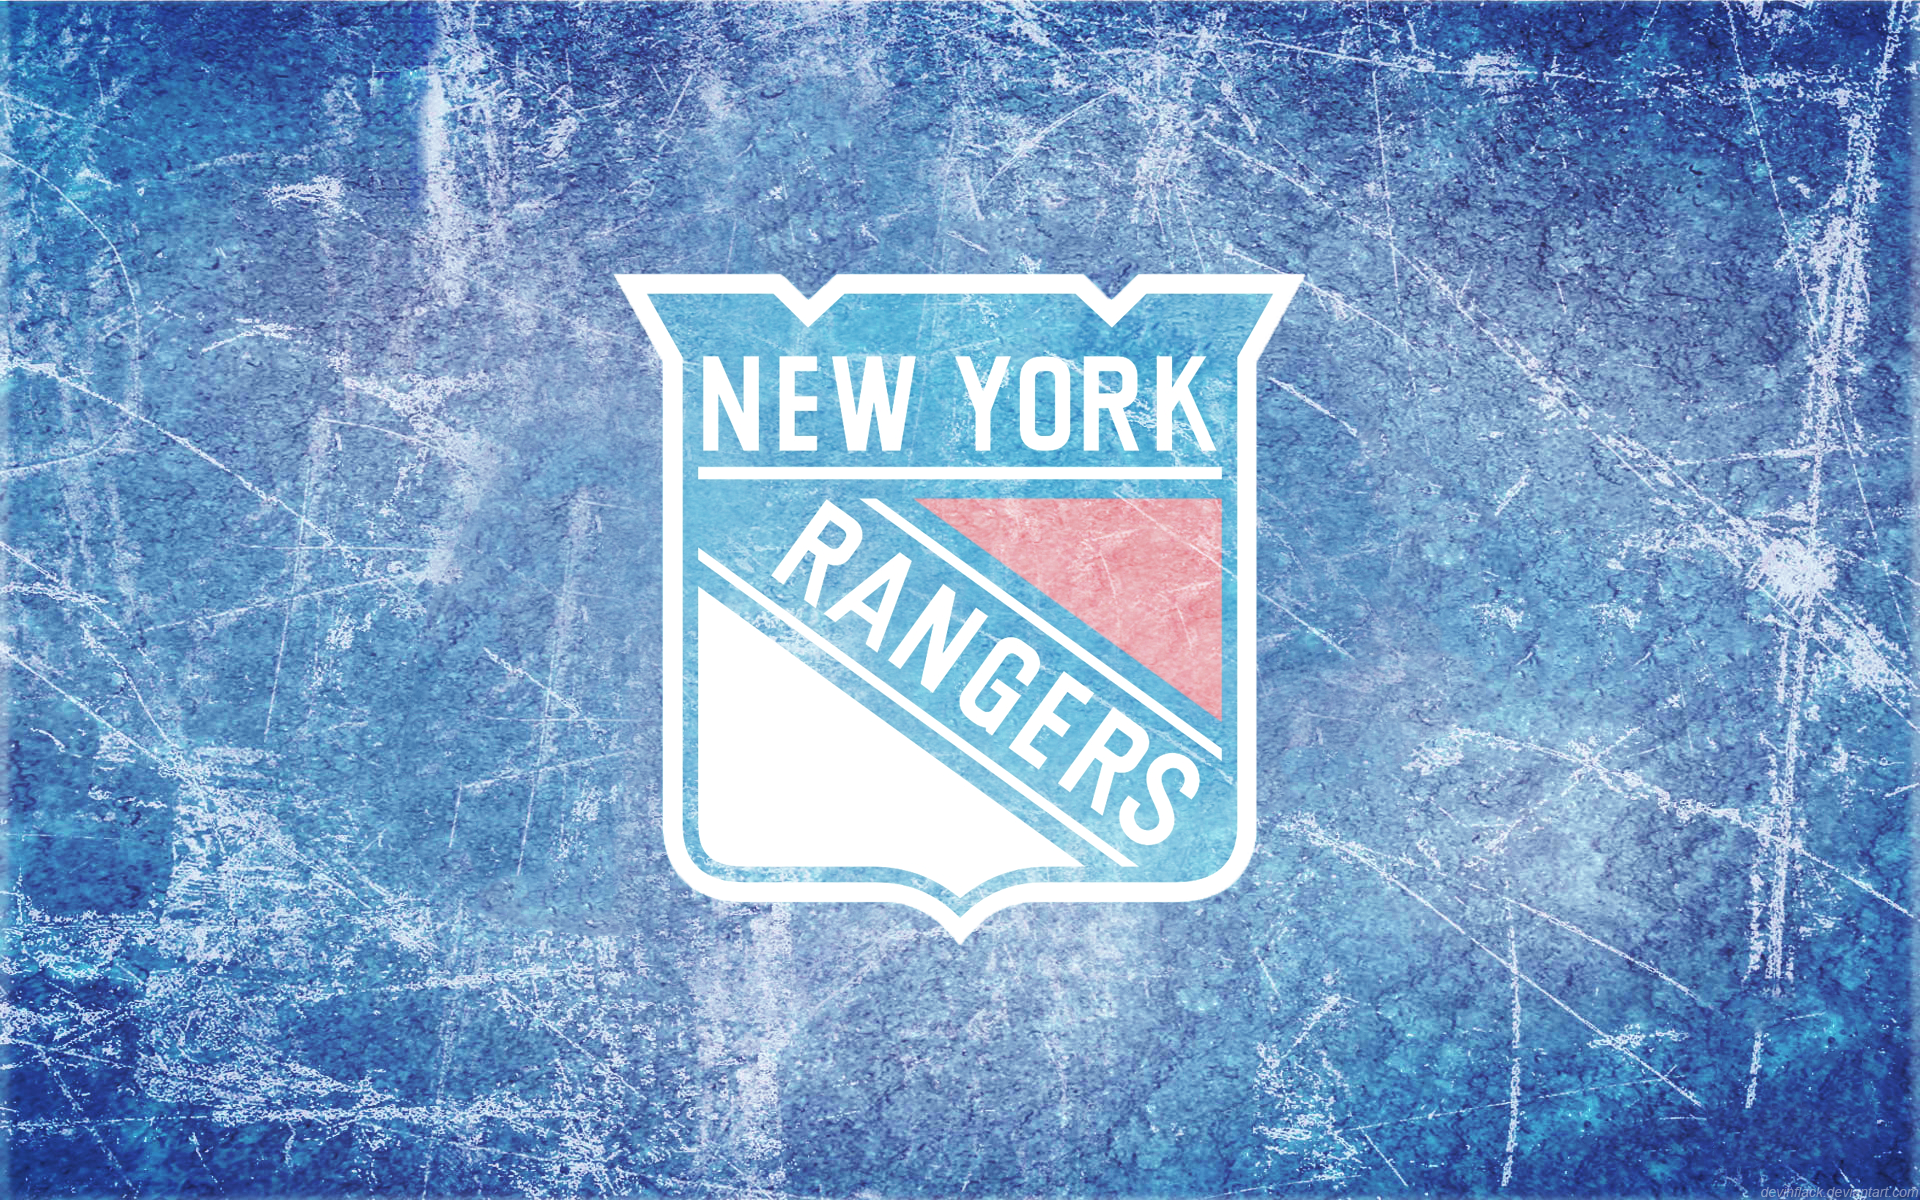 New York Rangers wallpapers New York Rangers background   Page 2 1920x1200